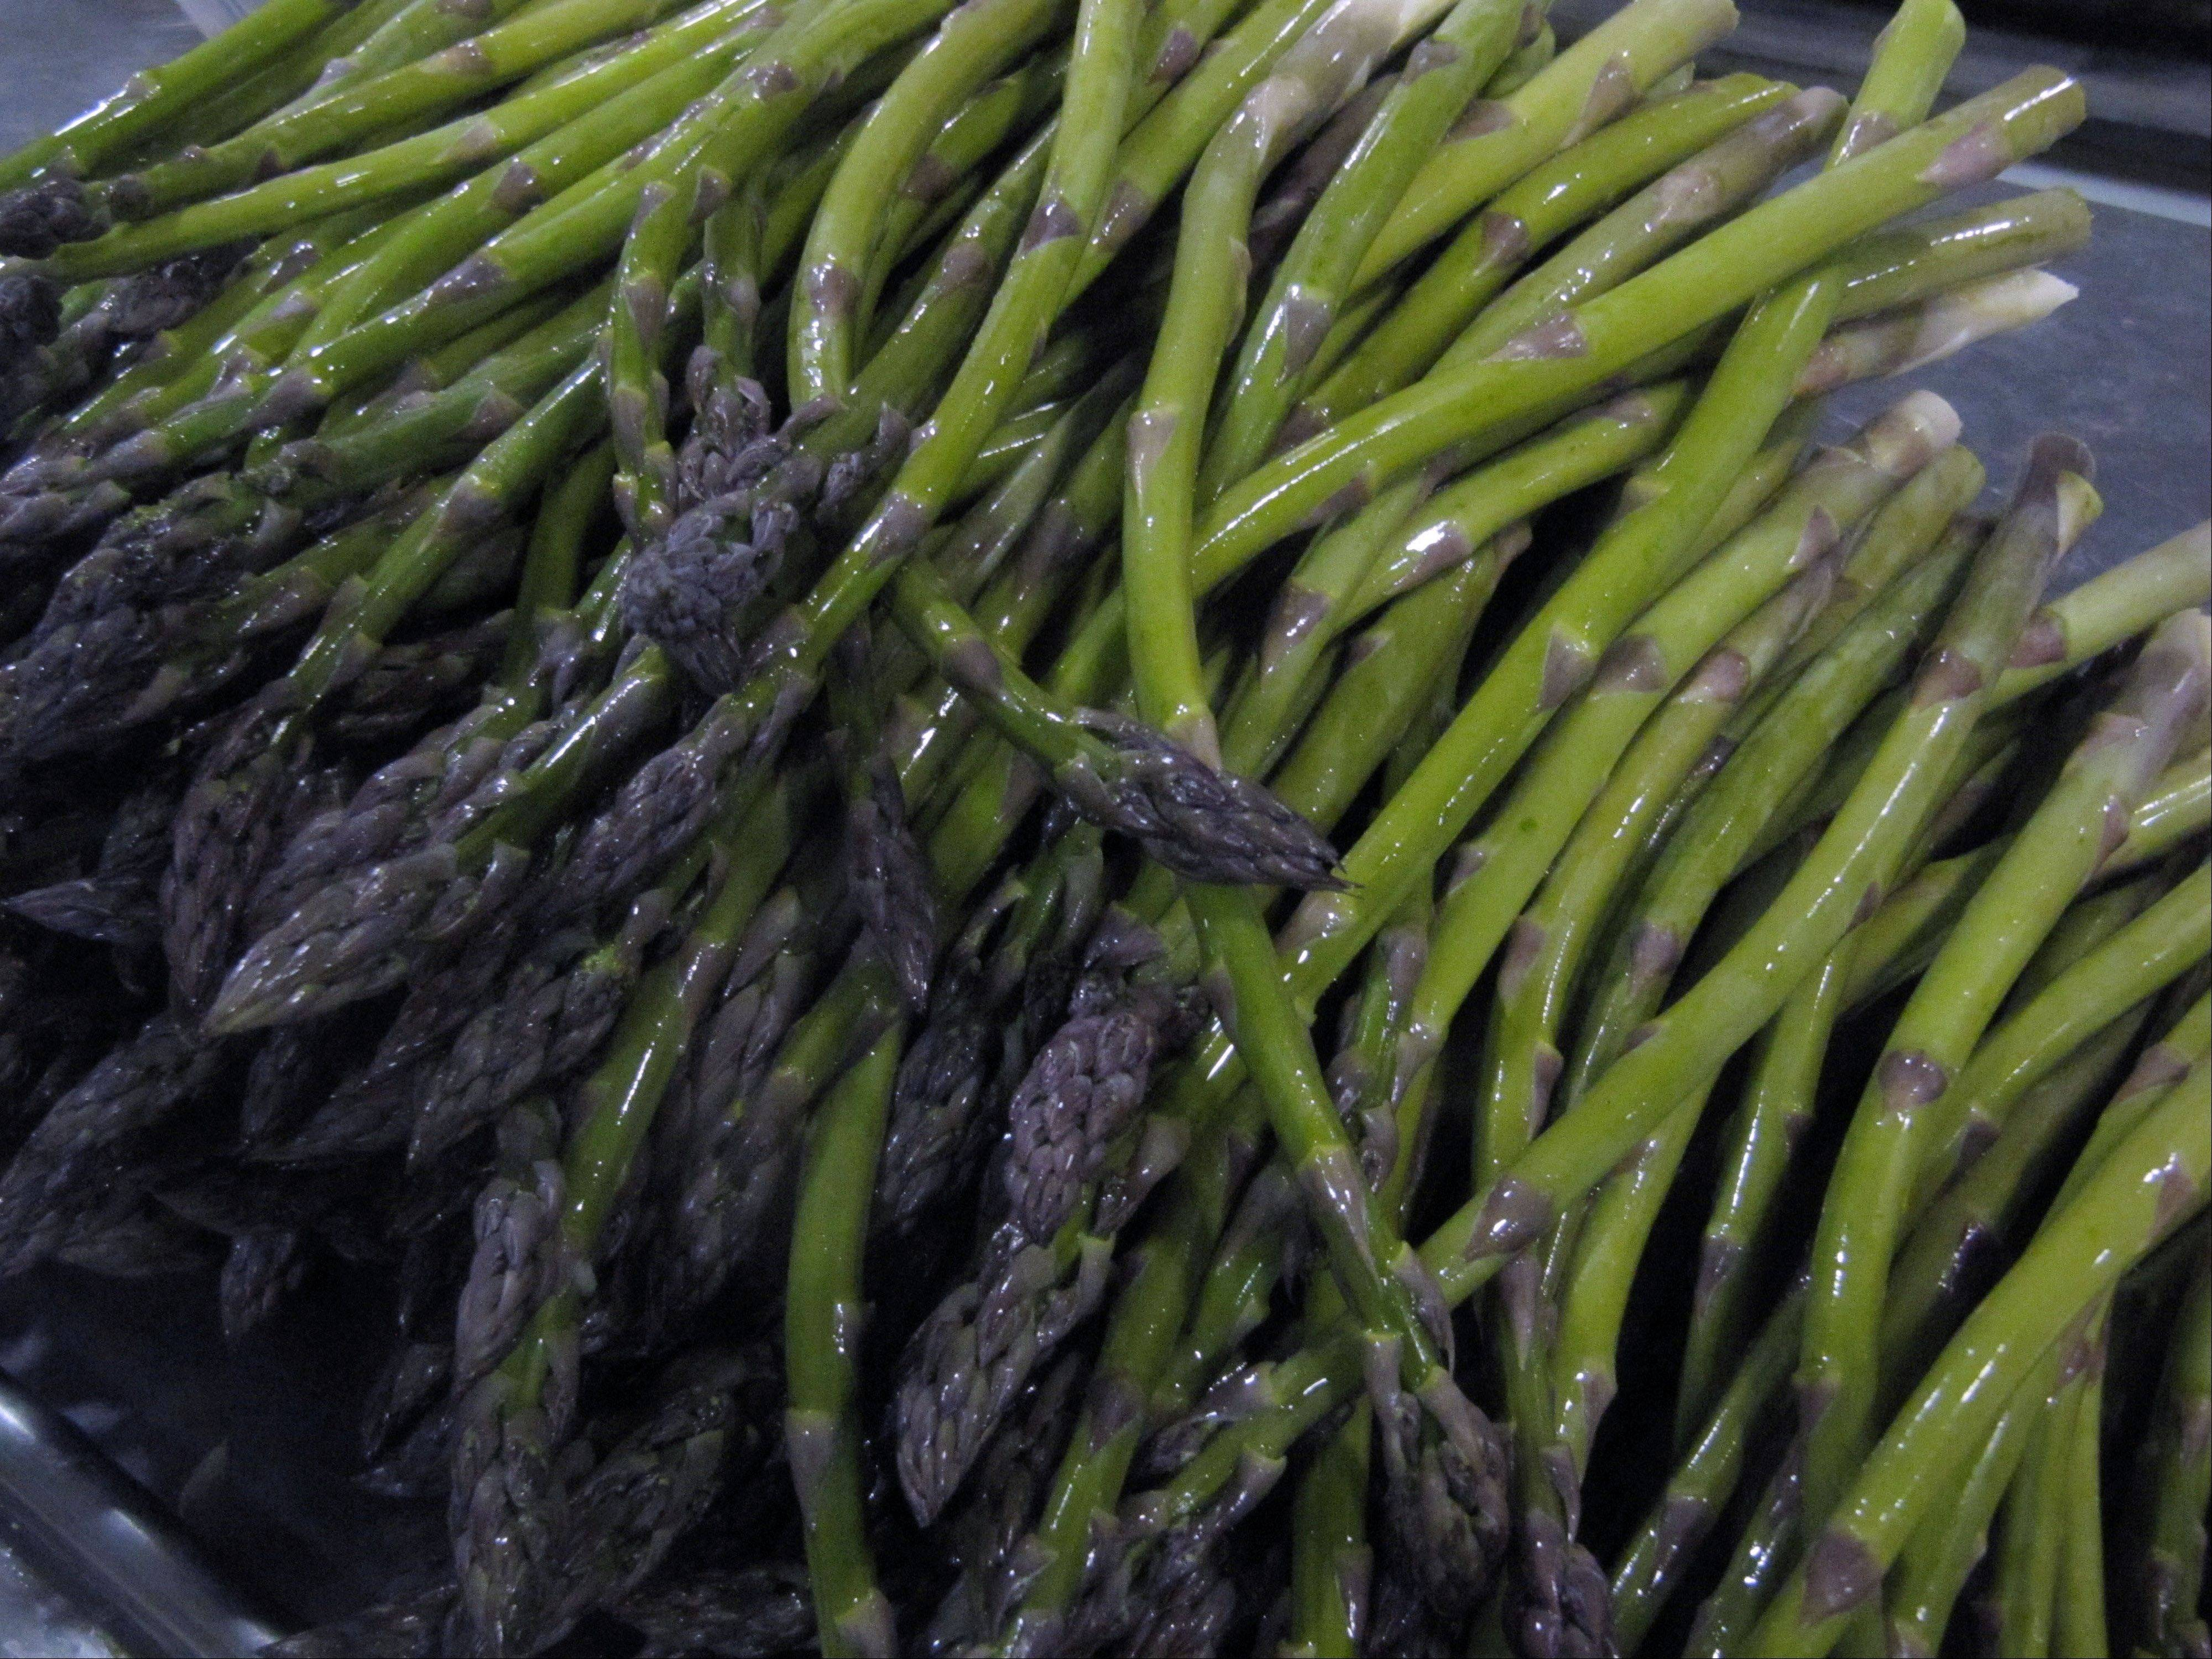 After decades in decline, asparagus consumption is back up.